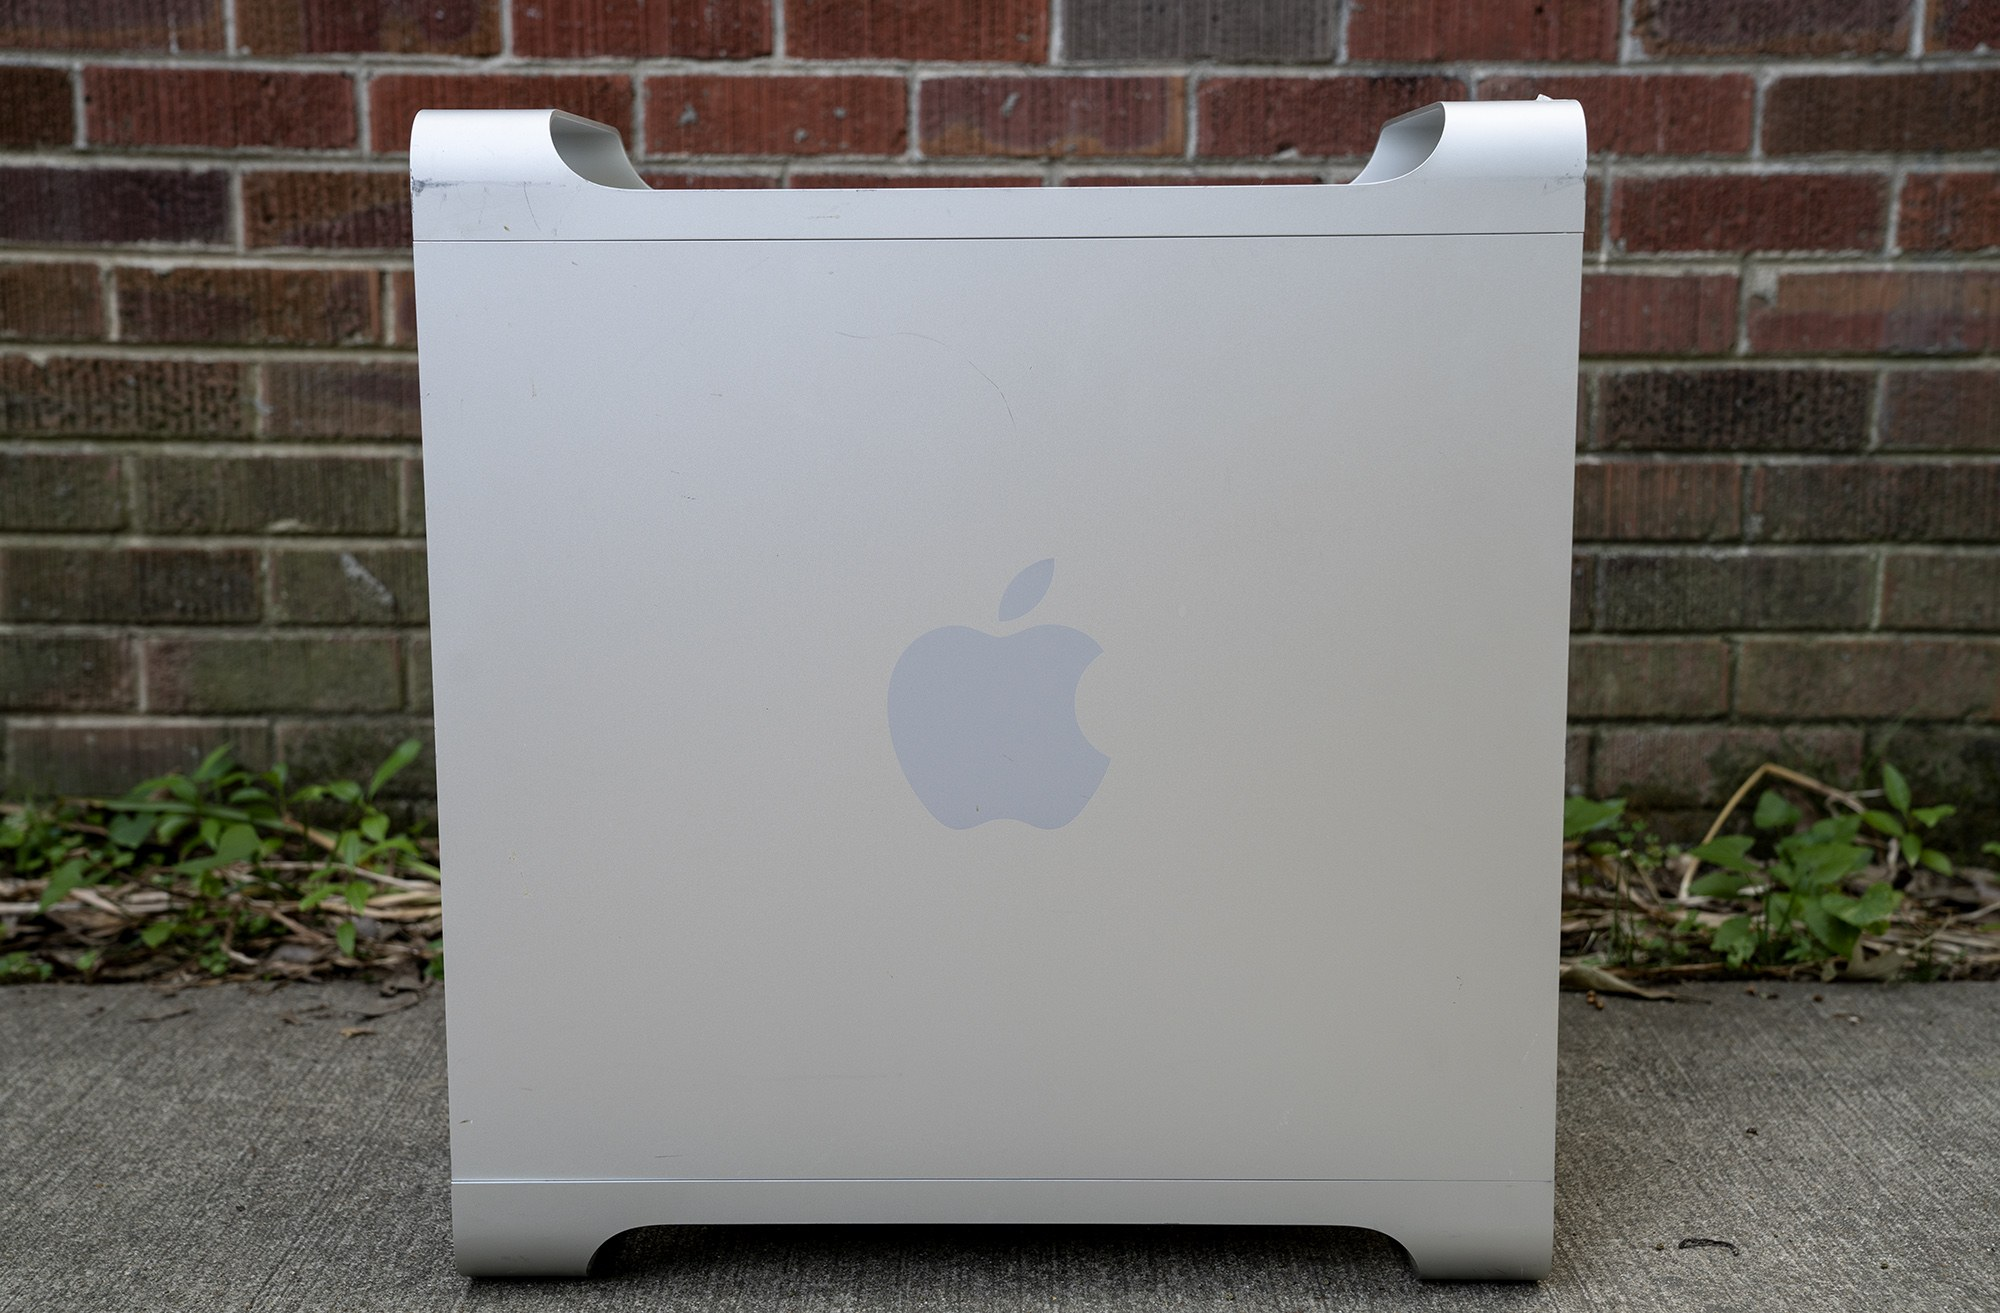 photo image The Mighty Power Mac G5